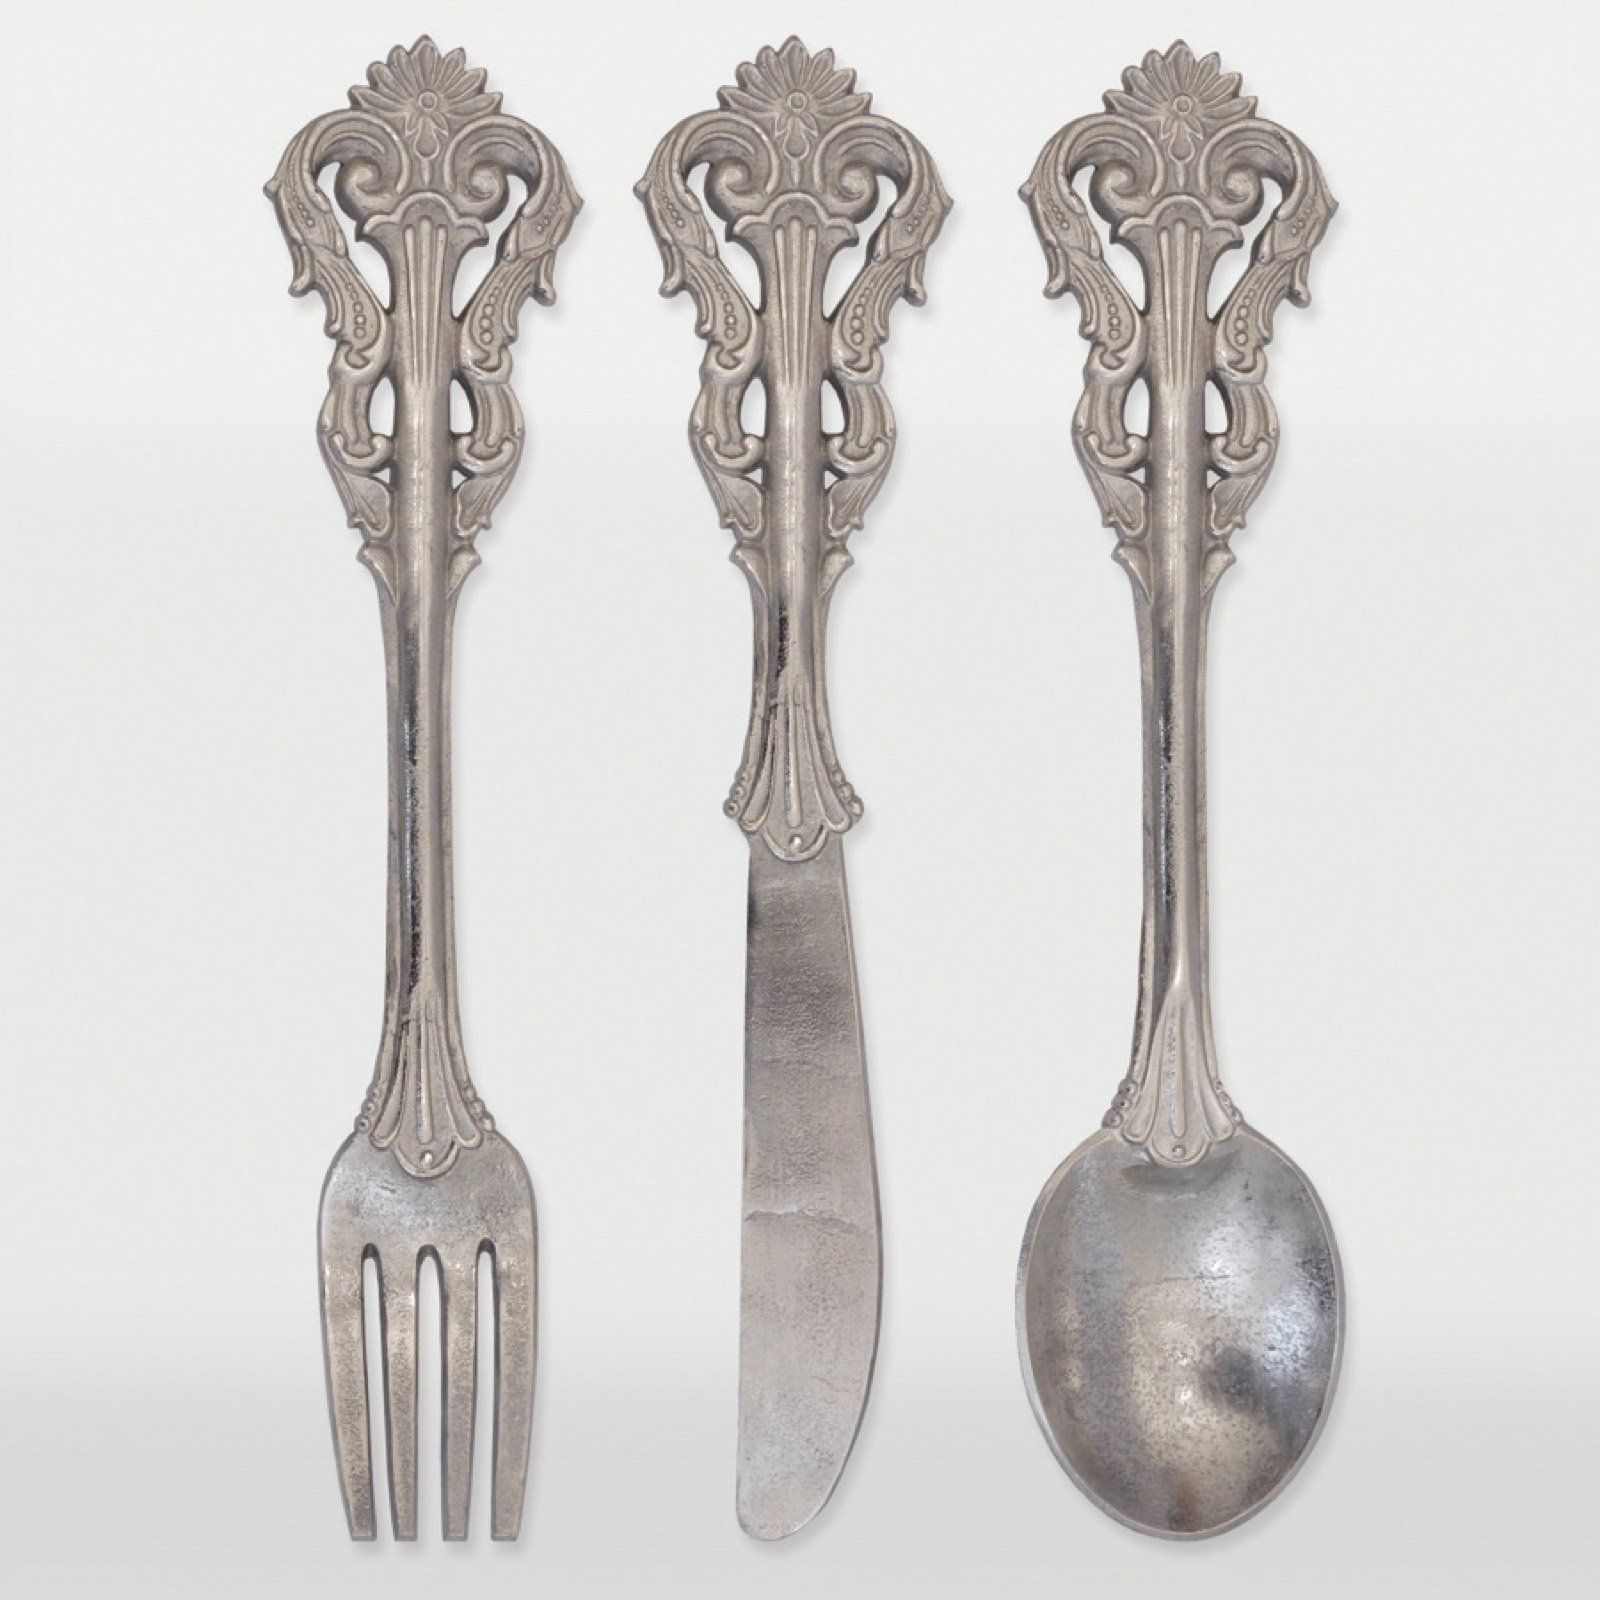 Renwil decadence wall decor set of raw nickel from